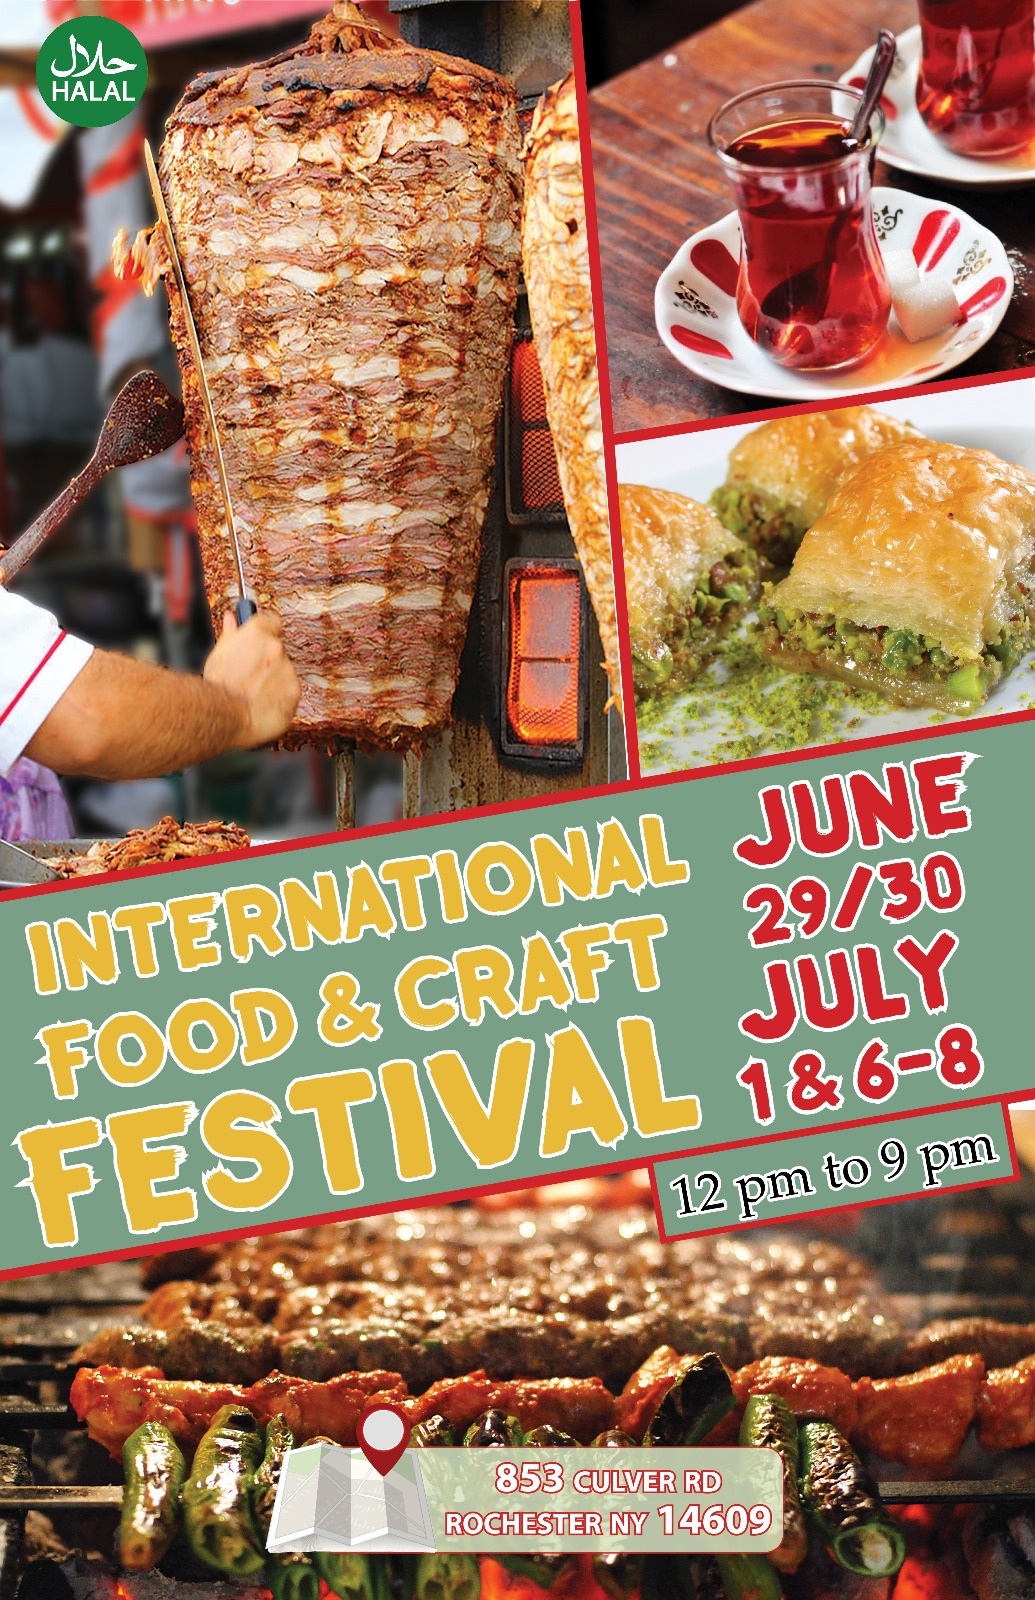 Festival 2018 (June 29- July 1 and July 6-8)